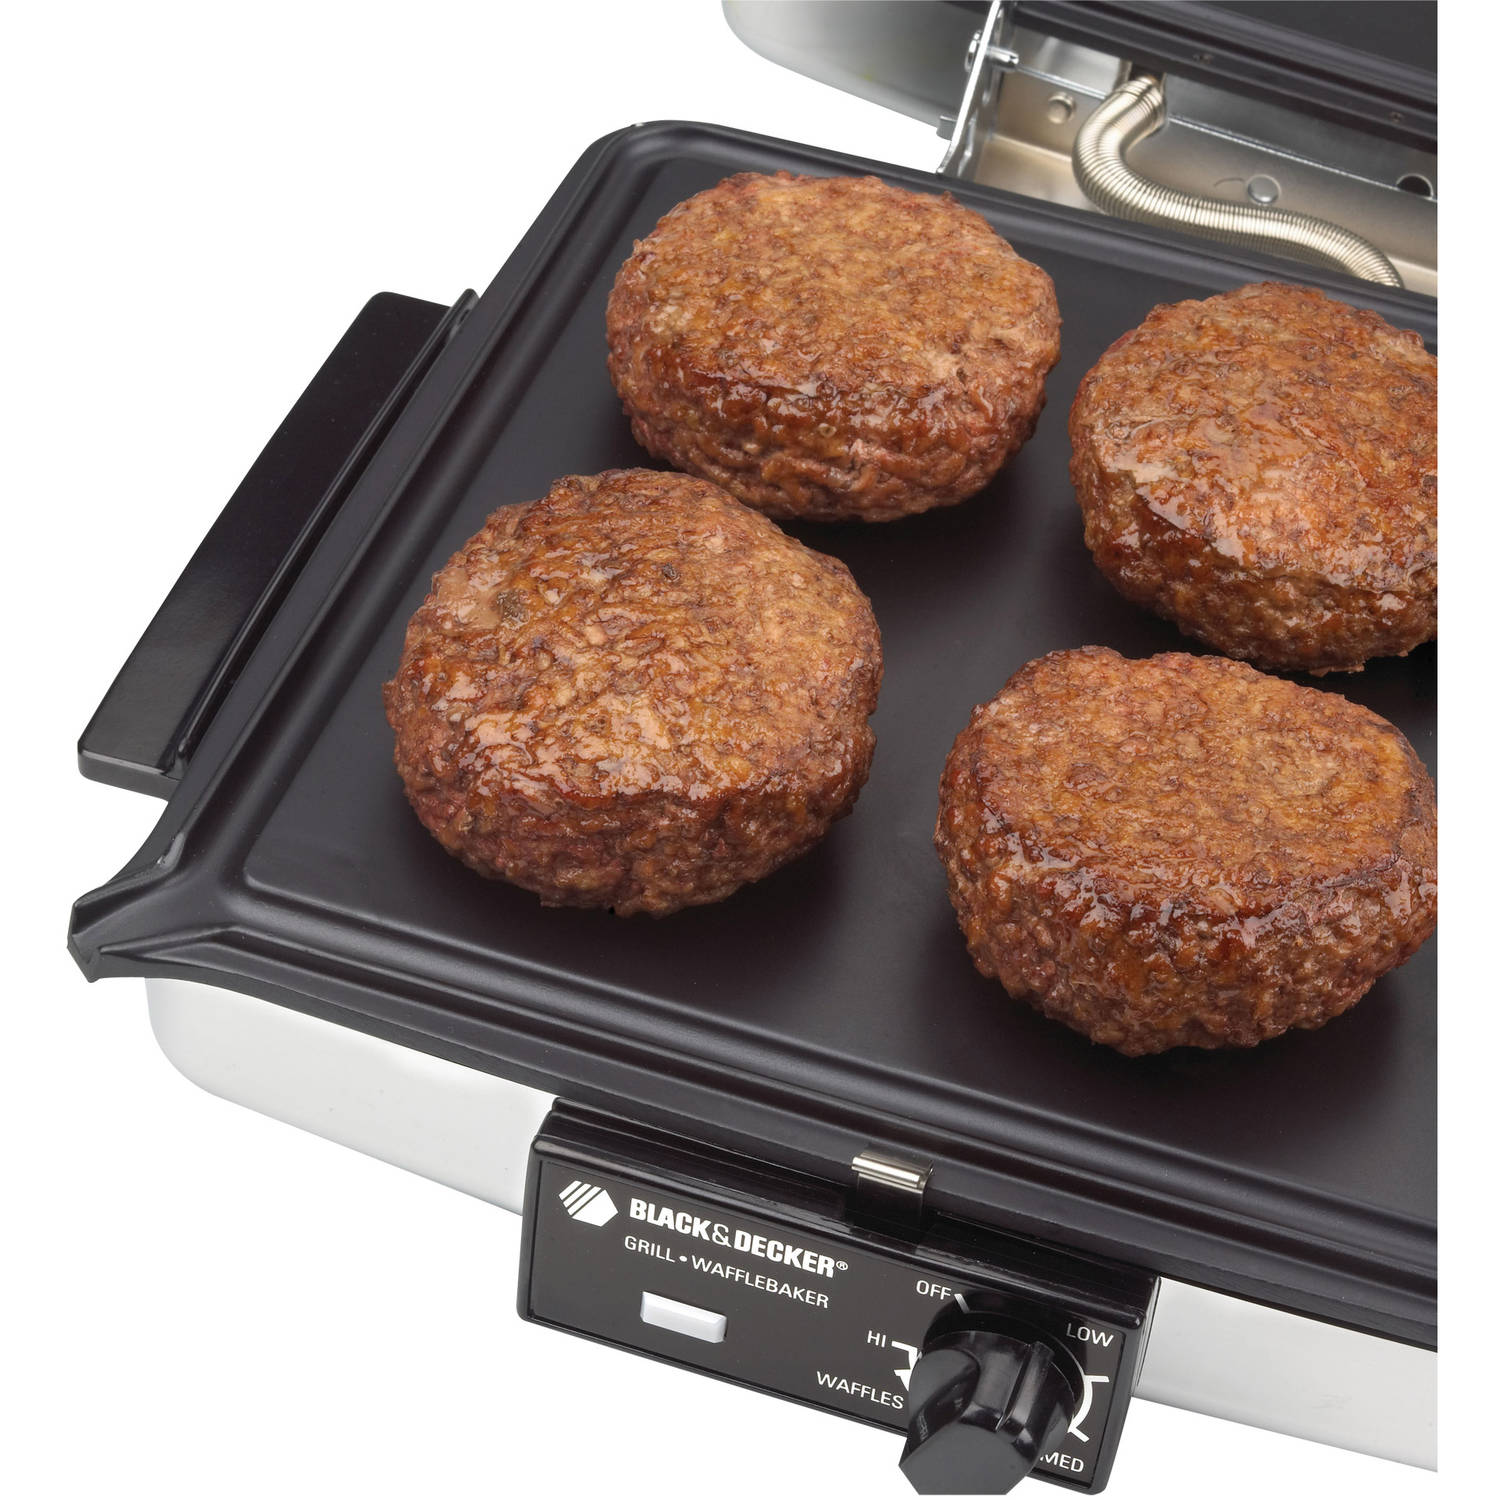 Sanduchera BLACK+DECKER 3-in-1 Waffle Maker  Indoor Grill, Griddle, G48TD + Hamilton Beach en VeoyCompro.net